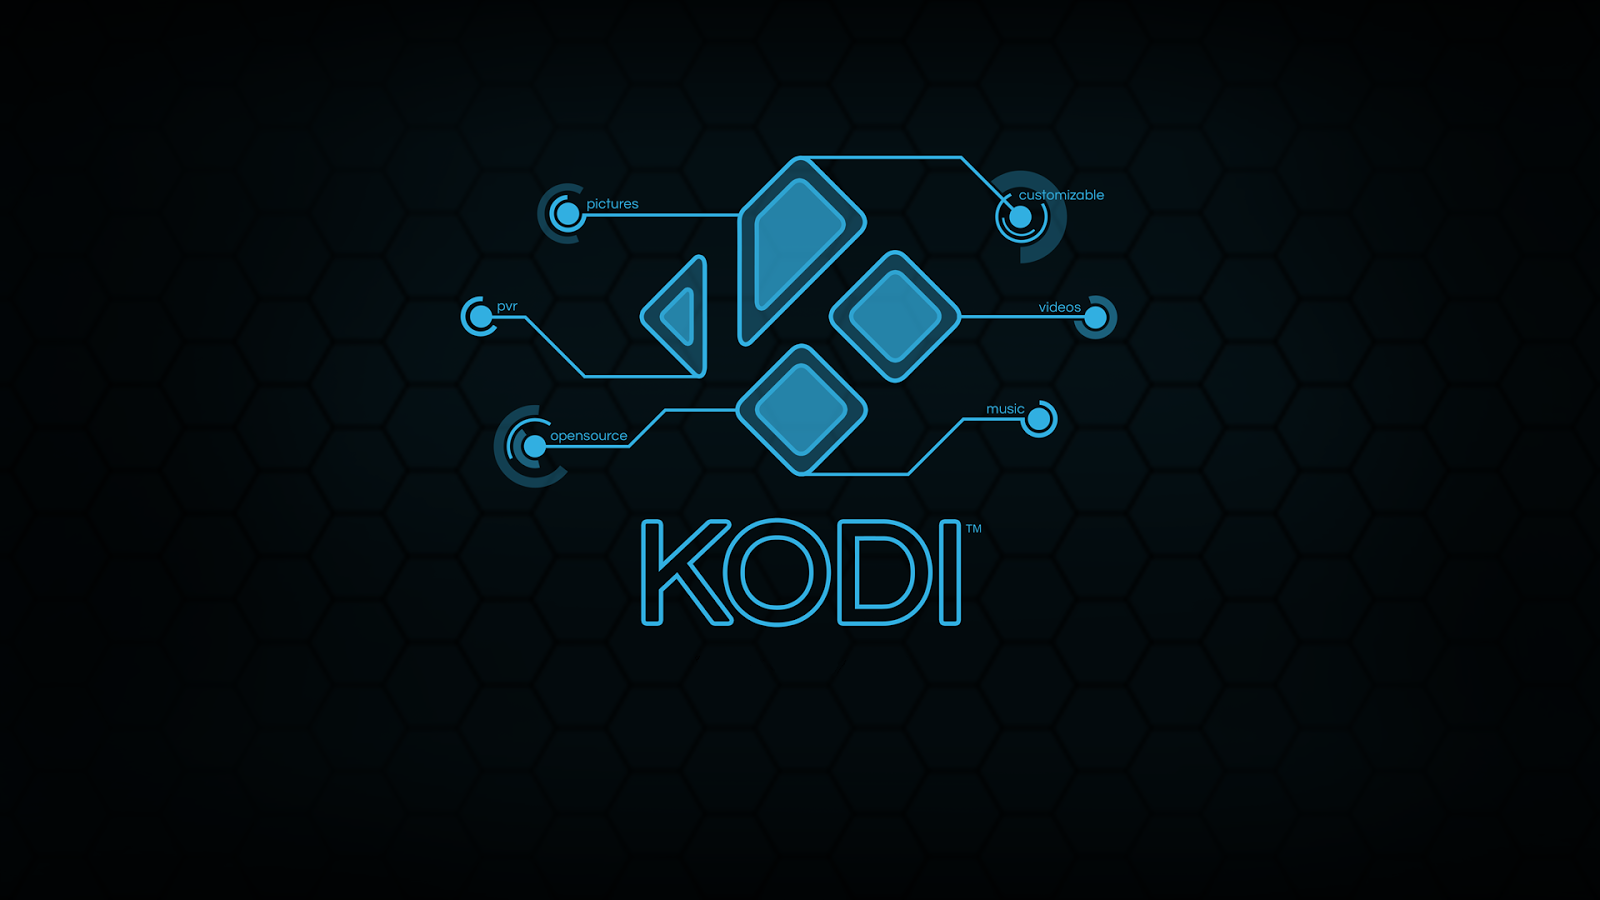 KODI – With Phil the Test Manager | Going Postal